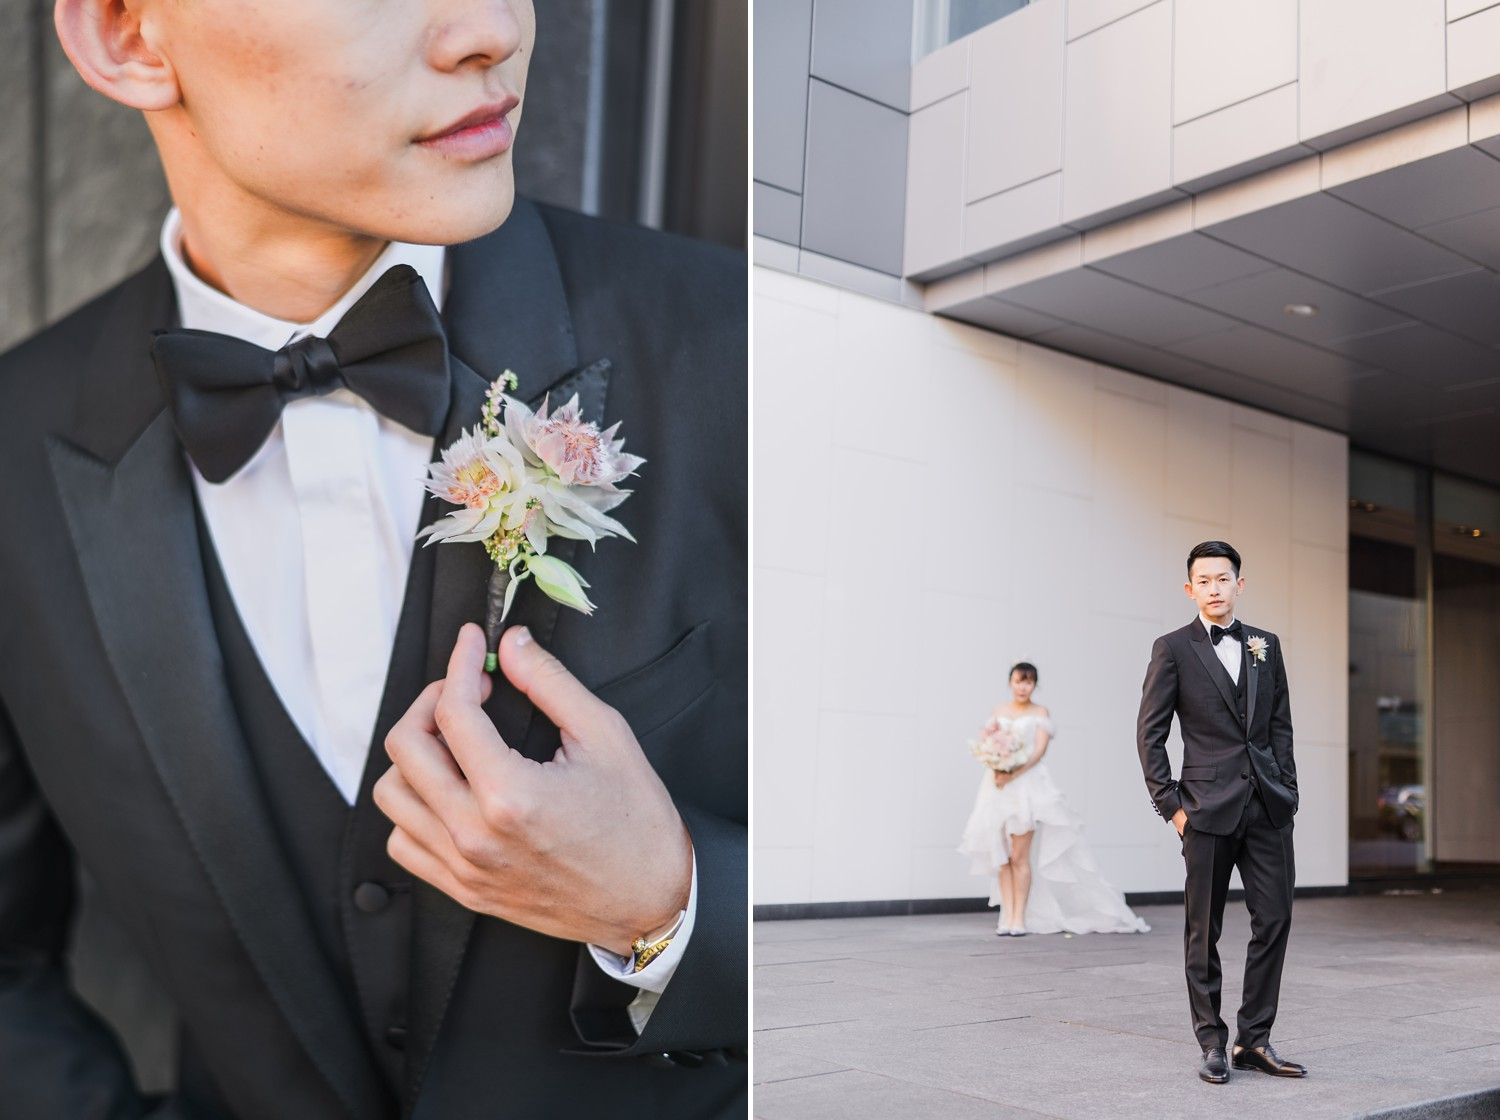 Elegant Wedding Portraits at Luxury Yorkville Vinci Toronto Four Season Hotel Wedding Photos with Chinese Bride and Groom